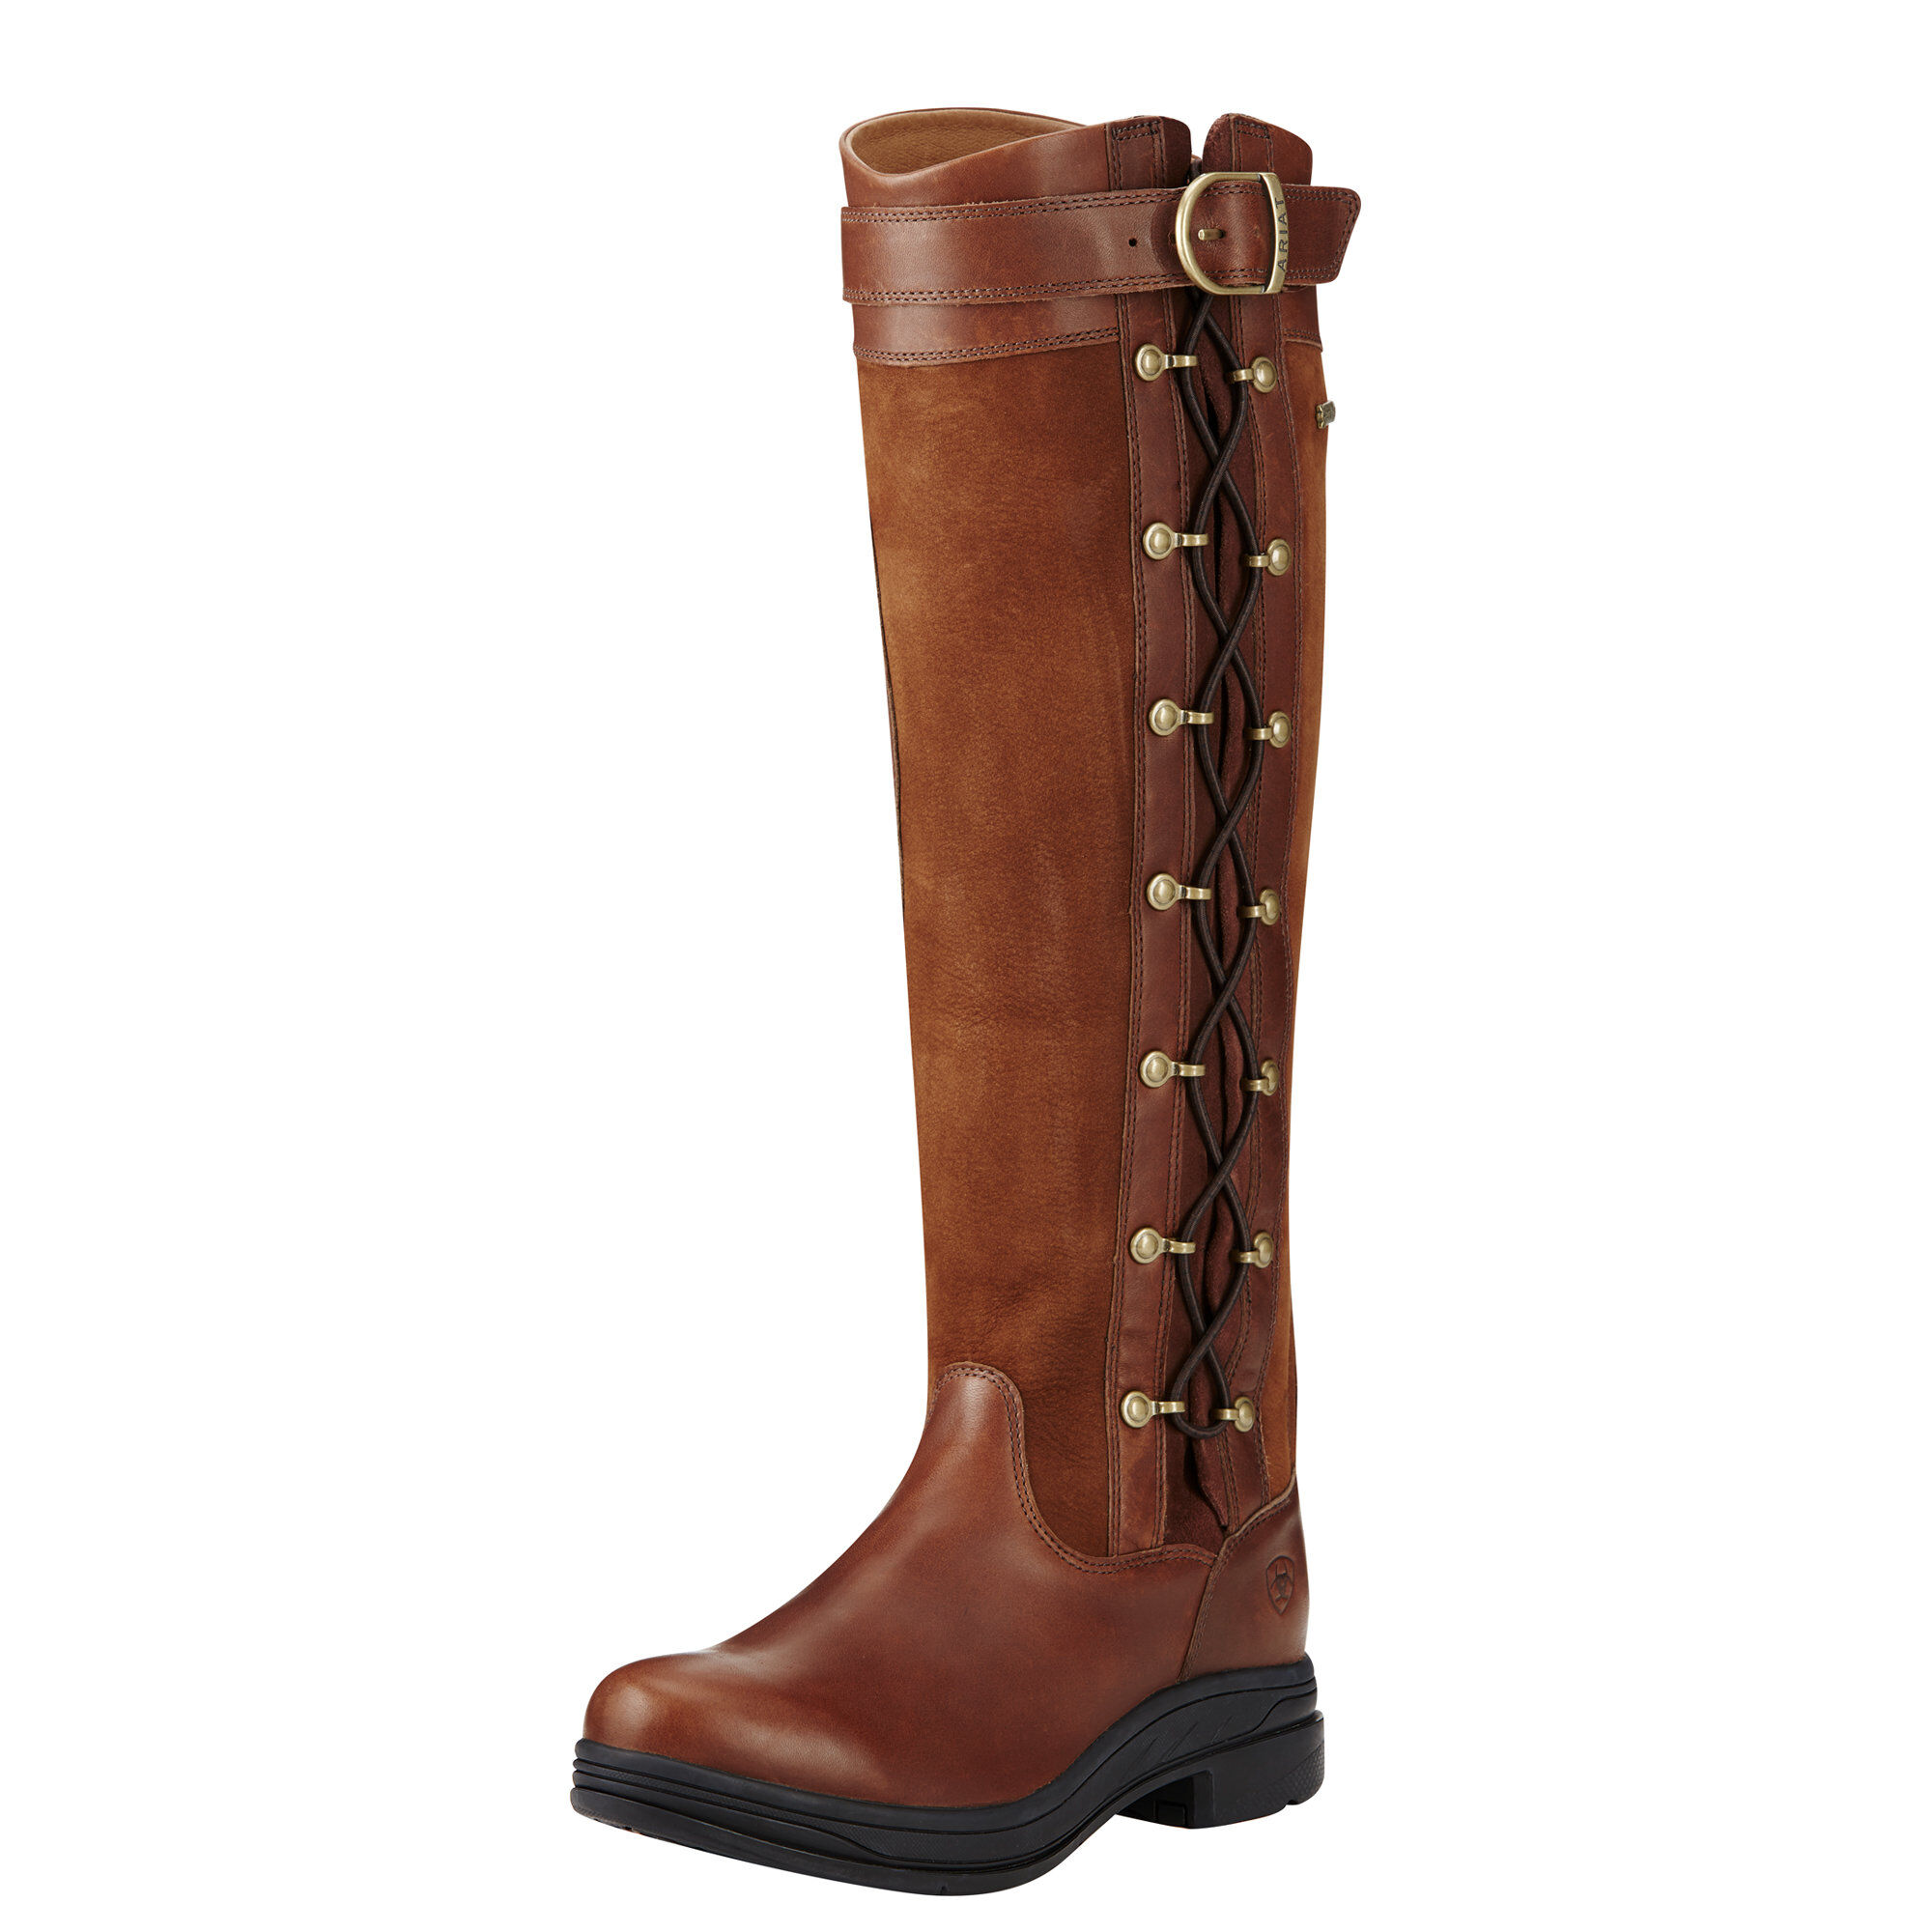 Ariat Grasmere Pro GTX Yard/Riding Boots